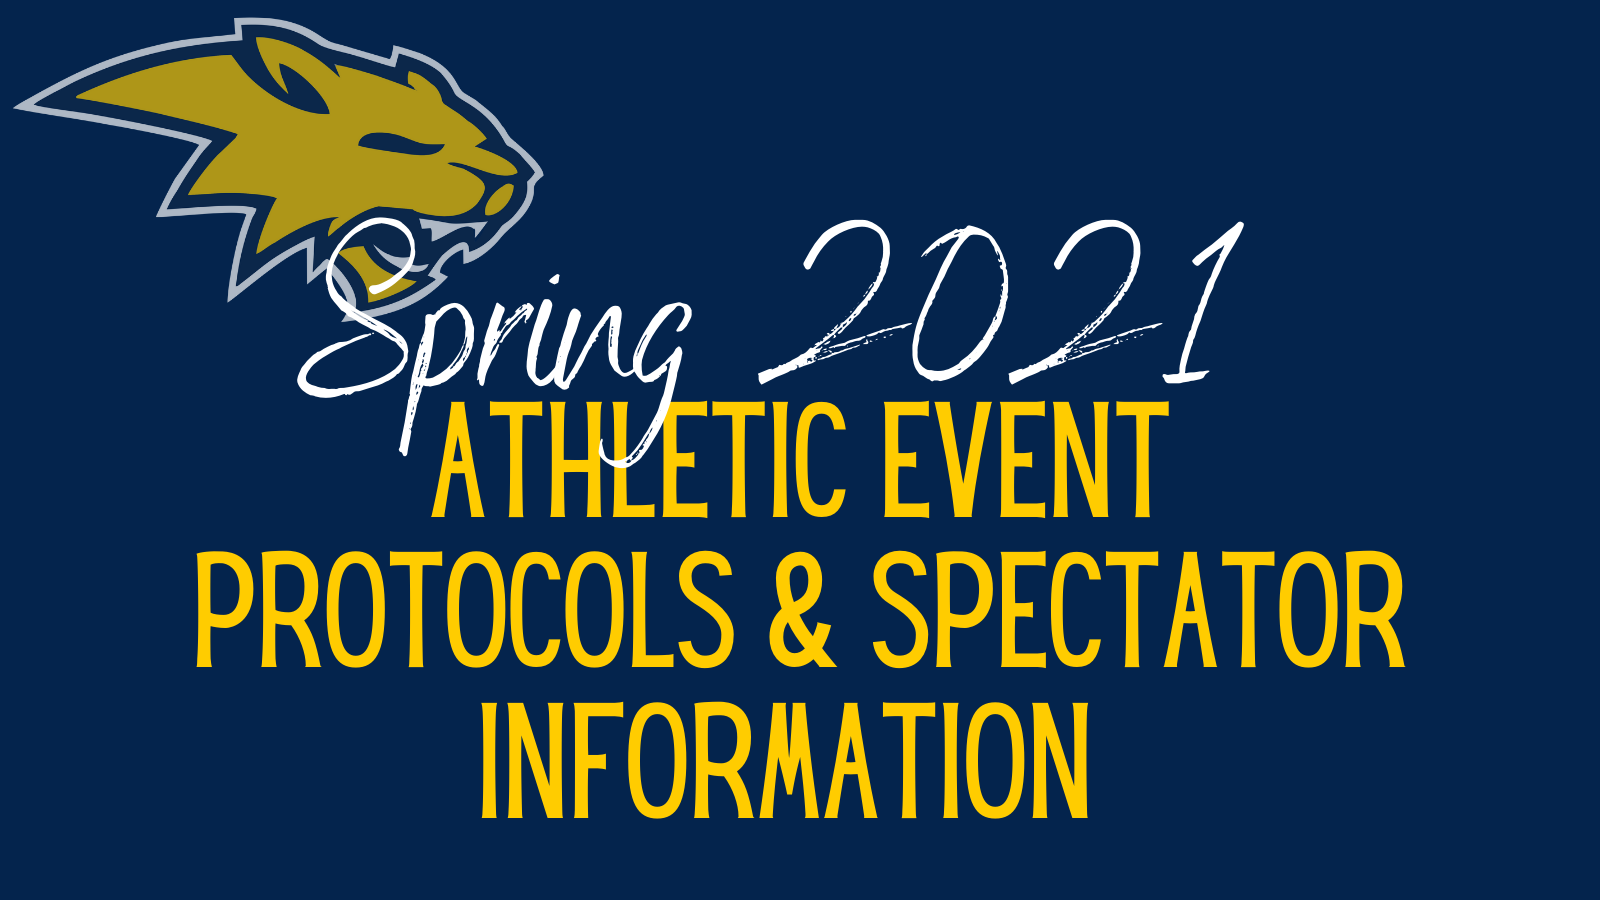 Spring Event Protocols and Spectator Information